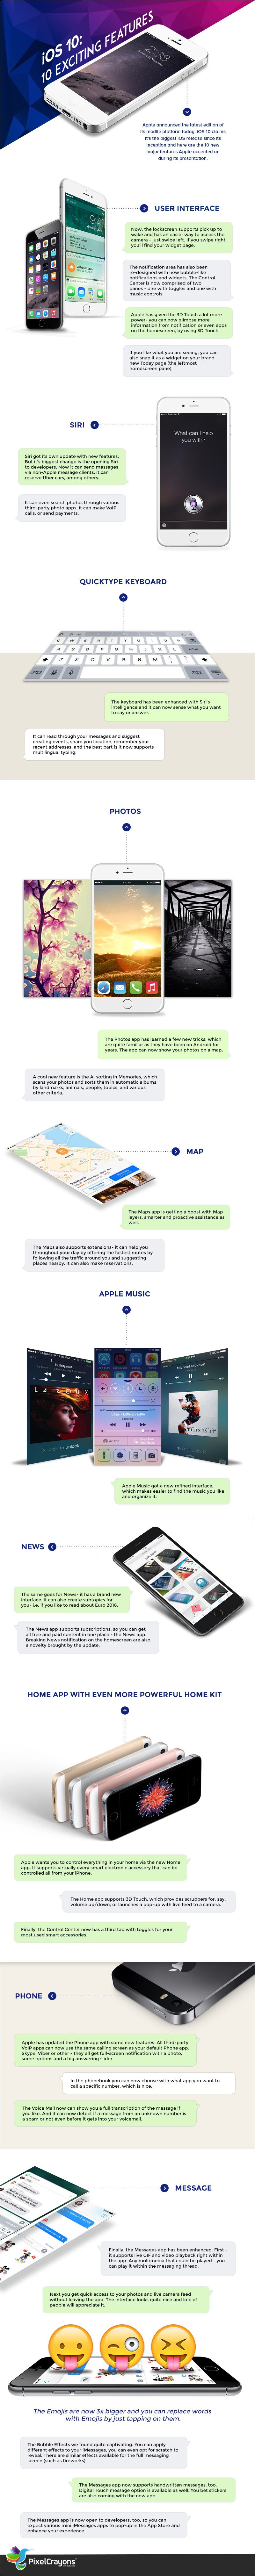 iOS 10 new/latest features infographic